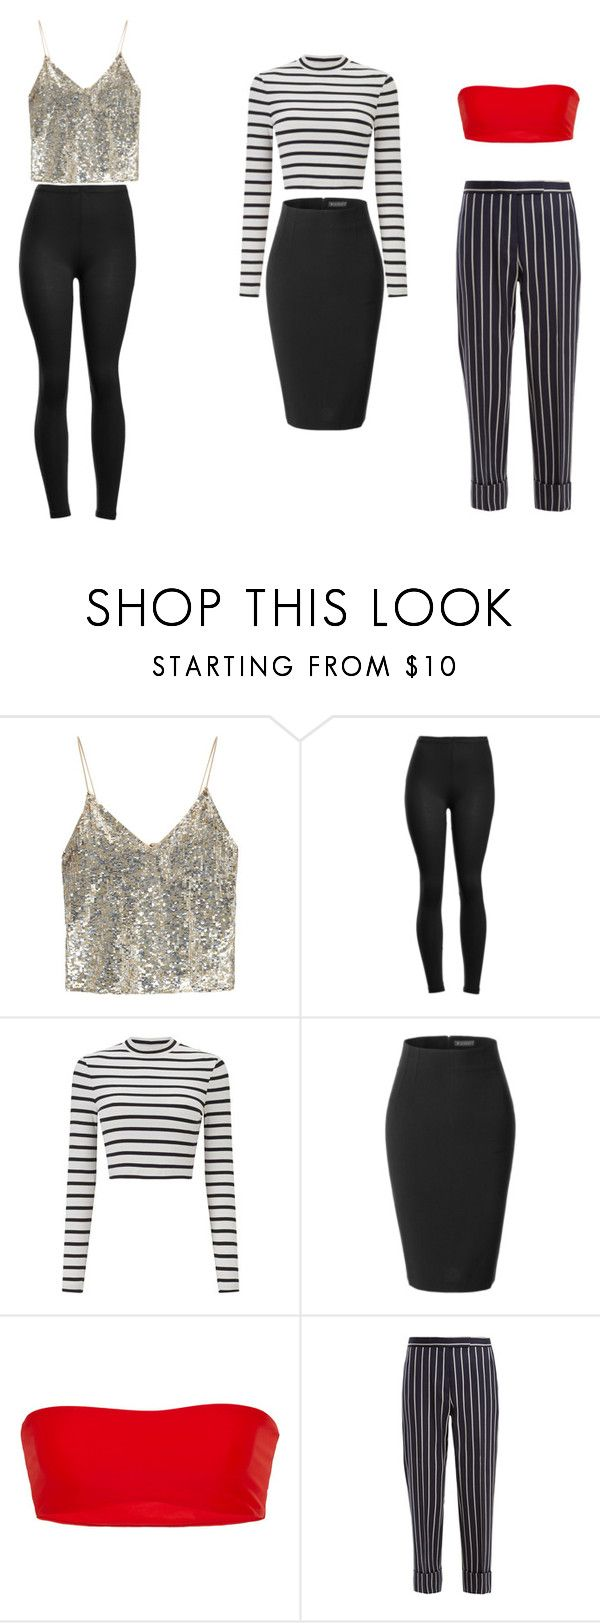 """""""Untitled #14"""" by vanessa-blomerus on Polyvore featuring Alice + Olivia, Miss Selfridge, LE3NO and Thom Browne"""